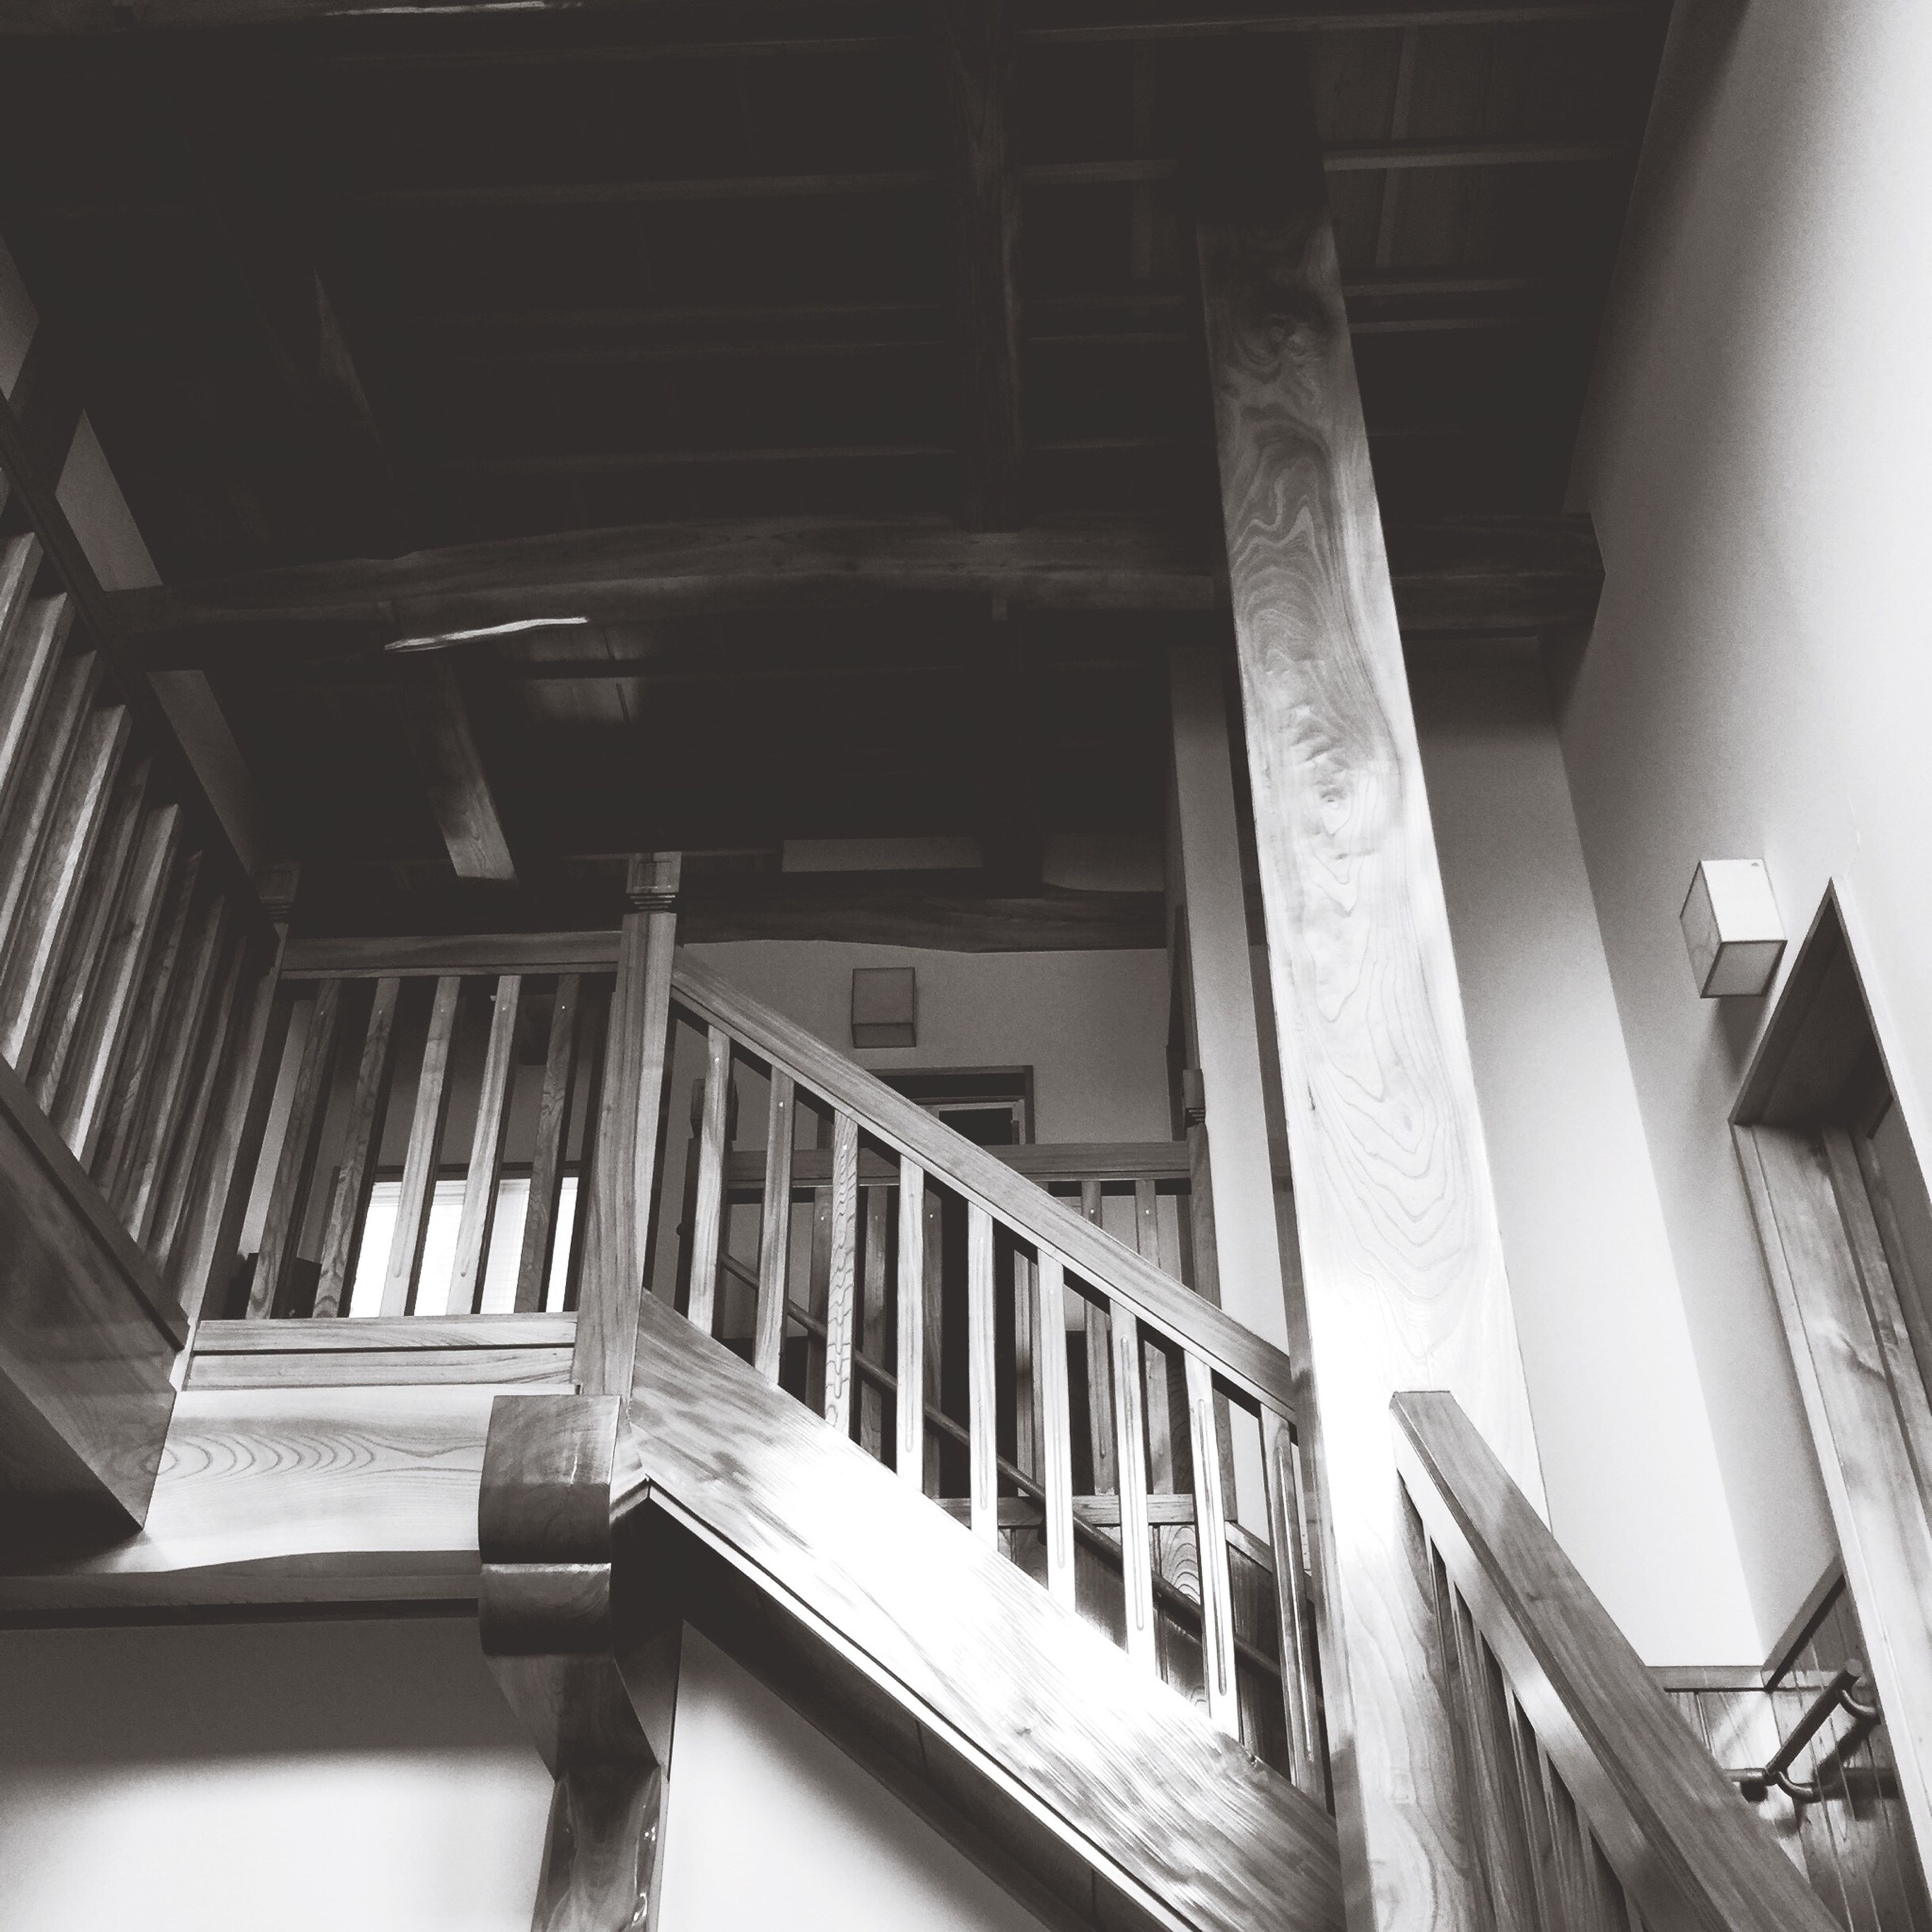 architecture, built structure, low angle view, building exterior, indoors, building, architectural column, staircase, steps, column, old, railing, steps and staircases, no people, window, abandoned, day, ceiling, support